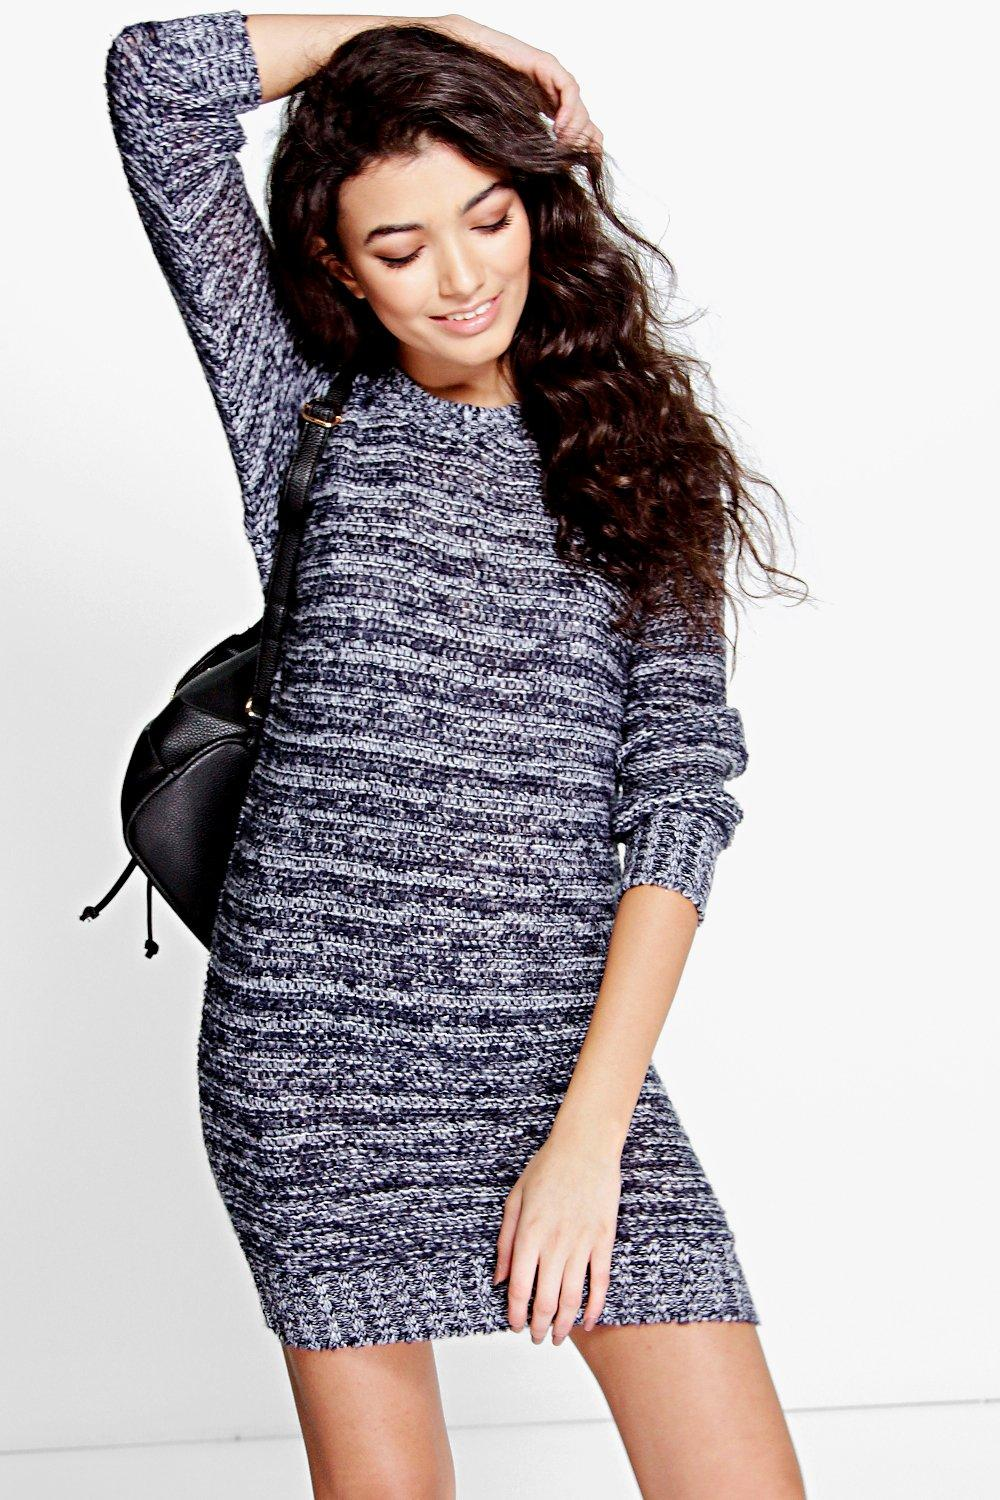 Amy Loose Stitch Soft Knit Marl Jumper Dress